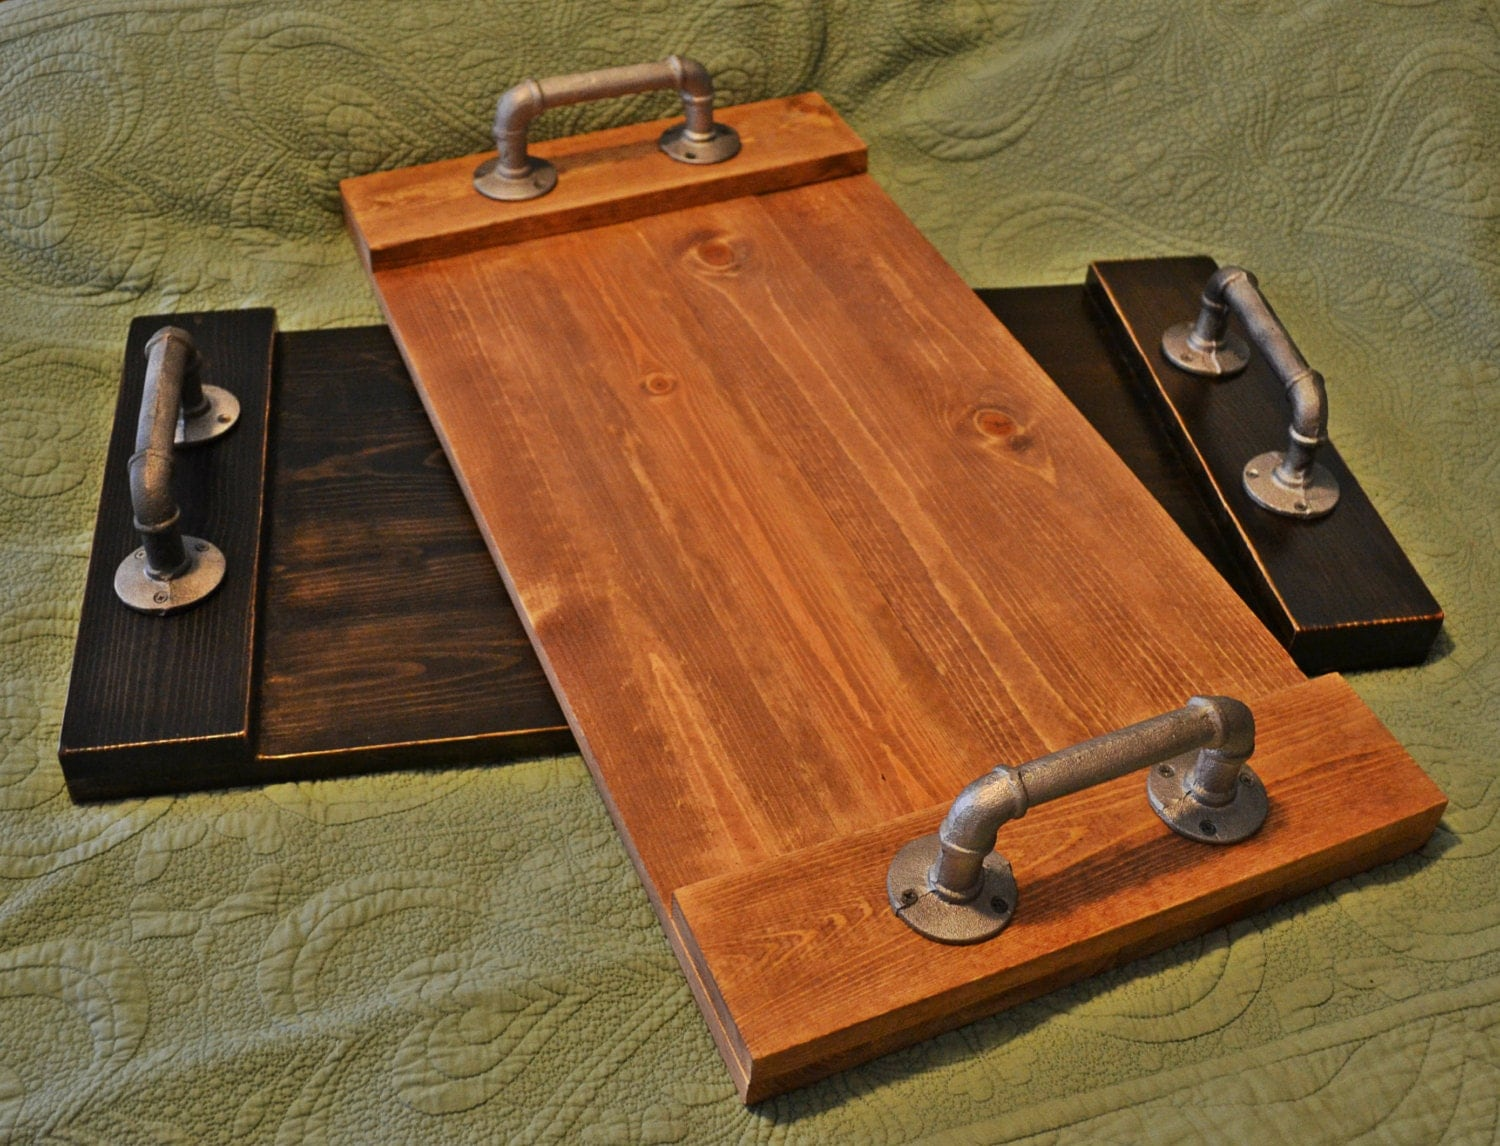 Pipe Serving Tray Rustic Wood Tray Wooden By Ellamurphydesigns